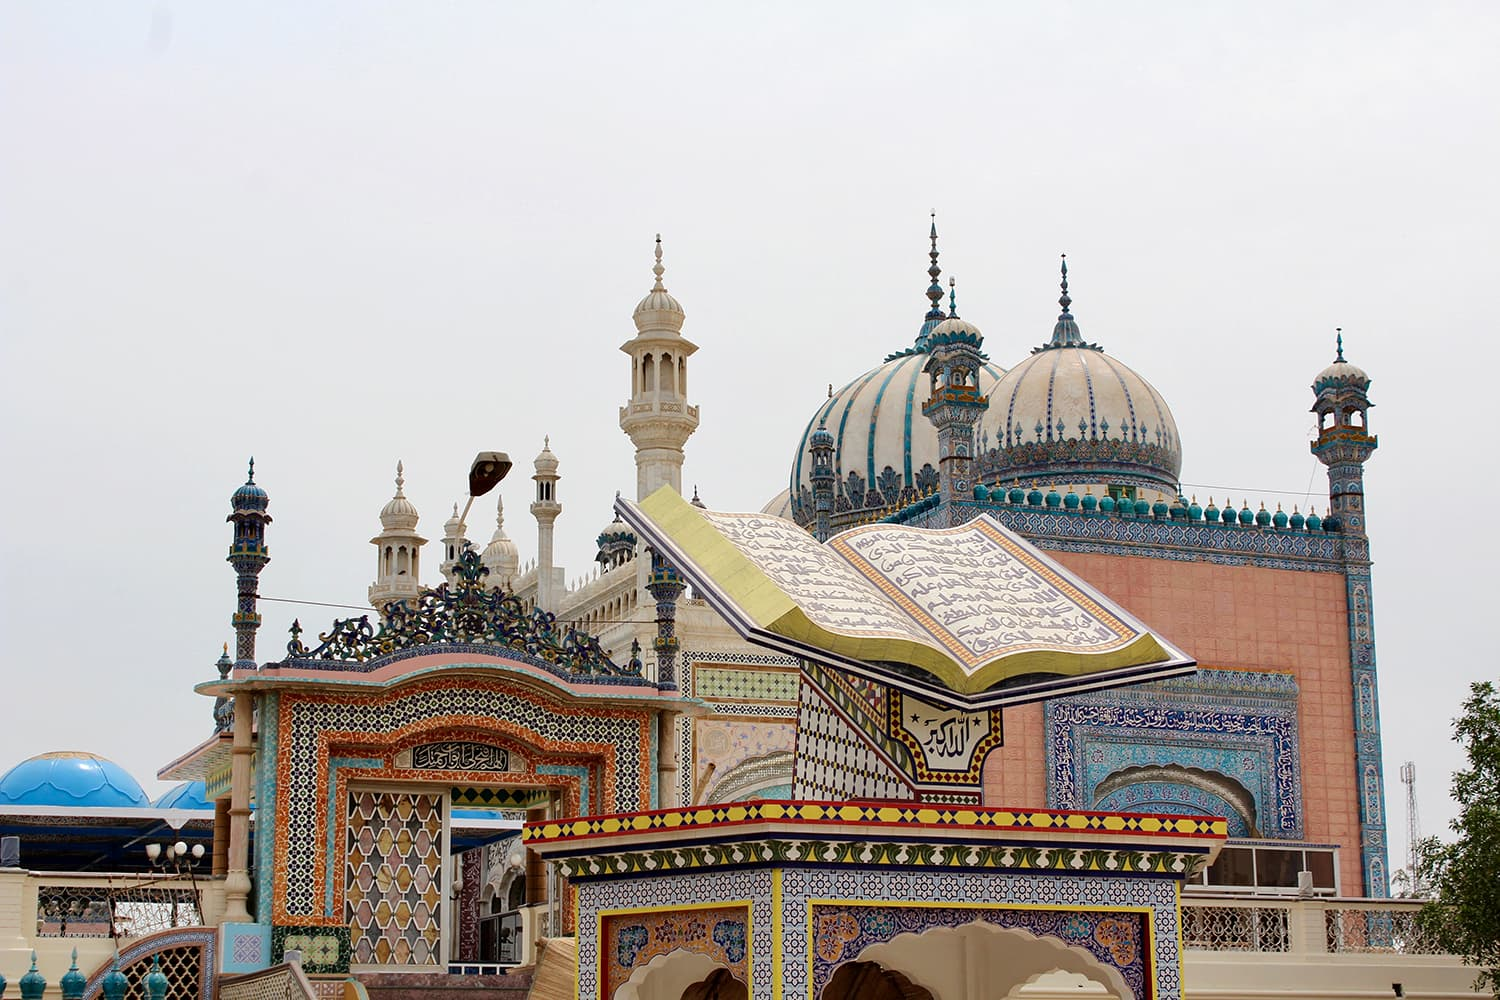 An architectural marvel, the Bhong Mosque is the most visually stunning place I have visited in Pakistan